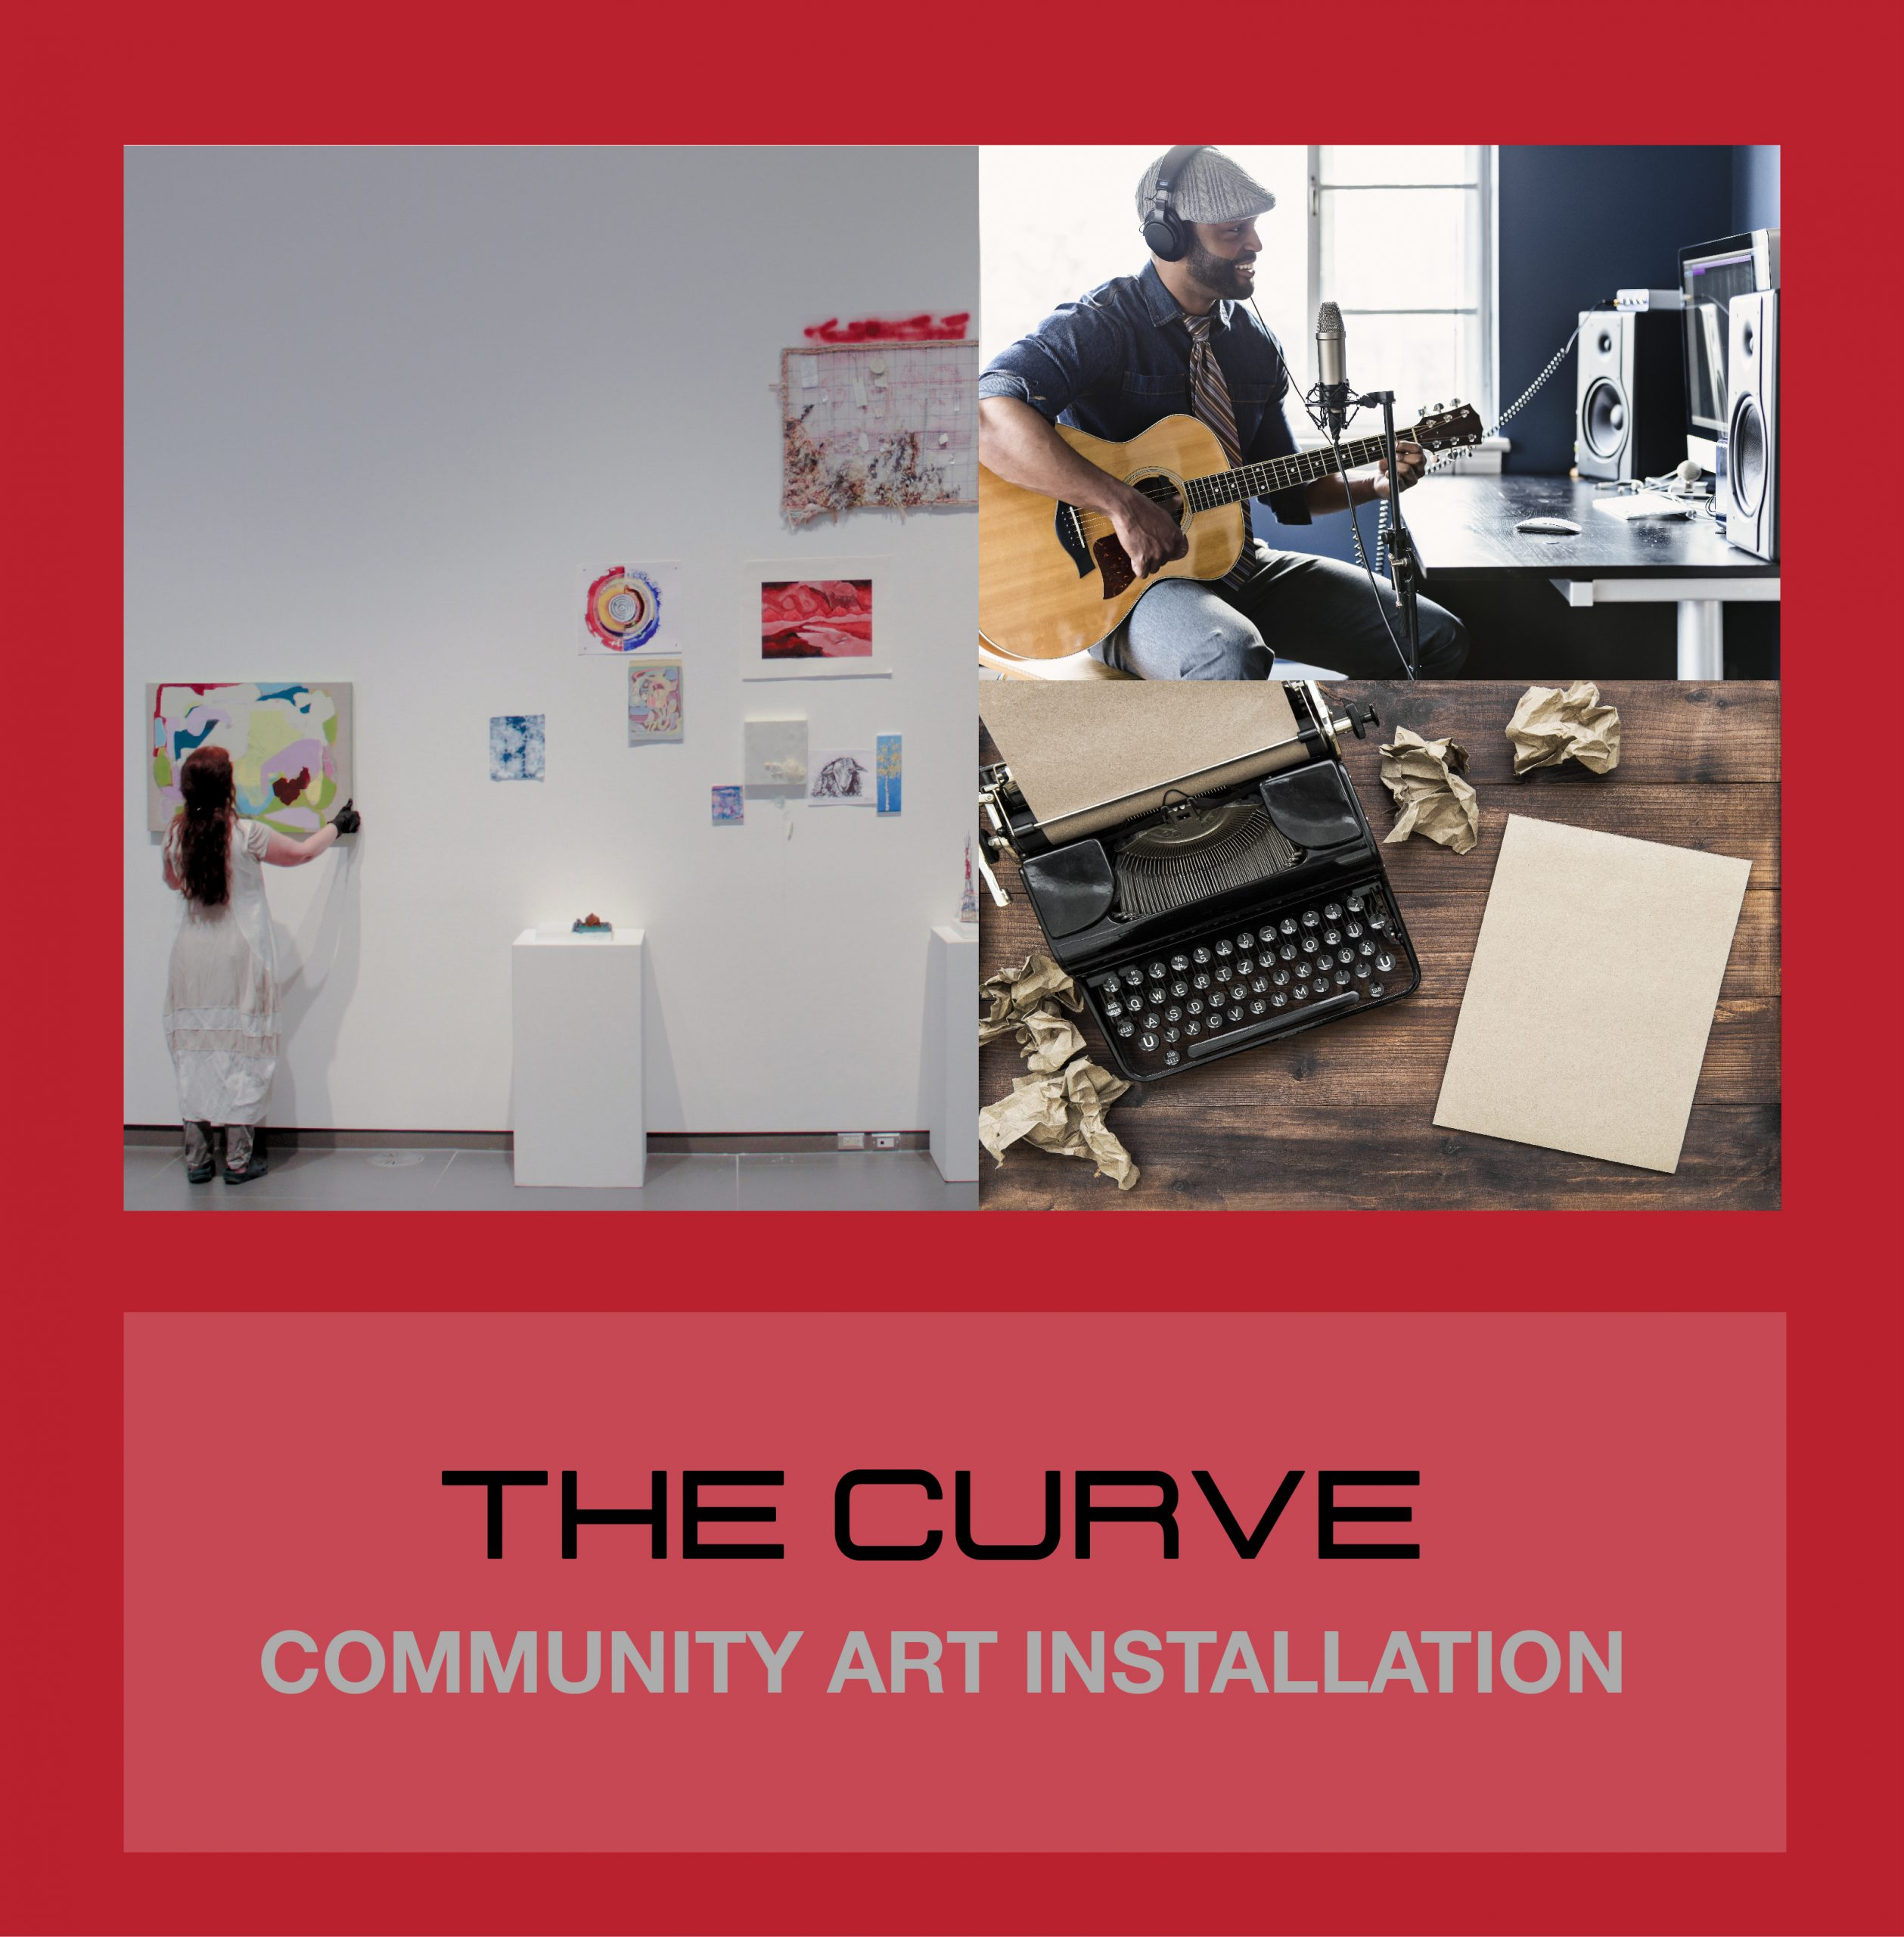 THE CURVE : Community Art Installation